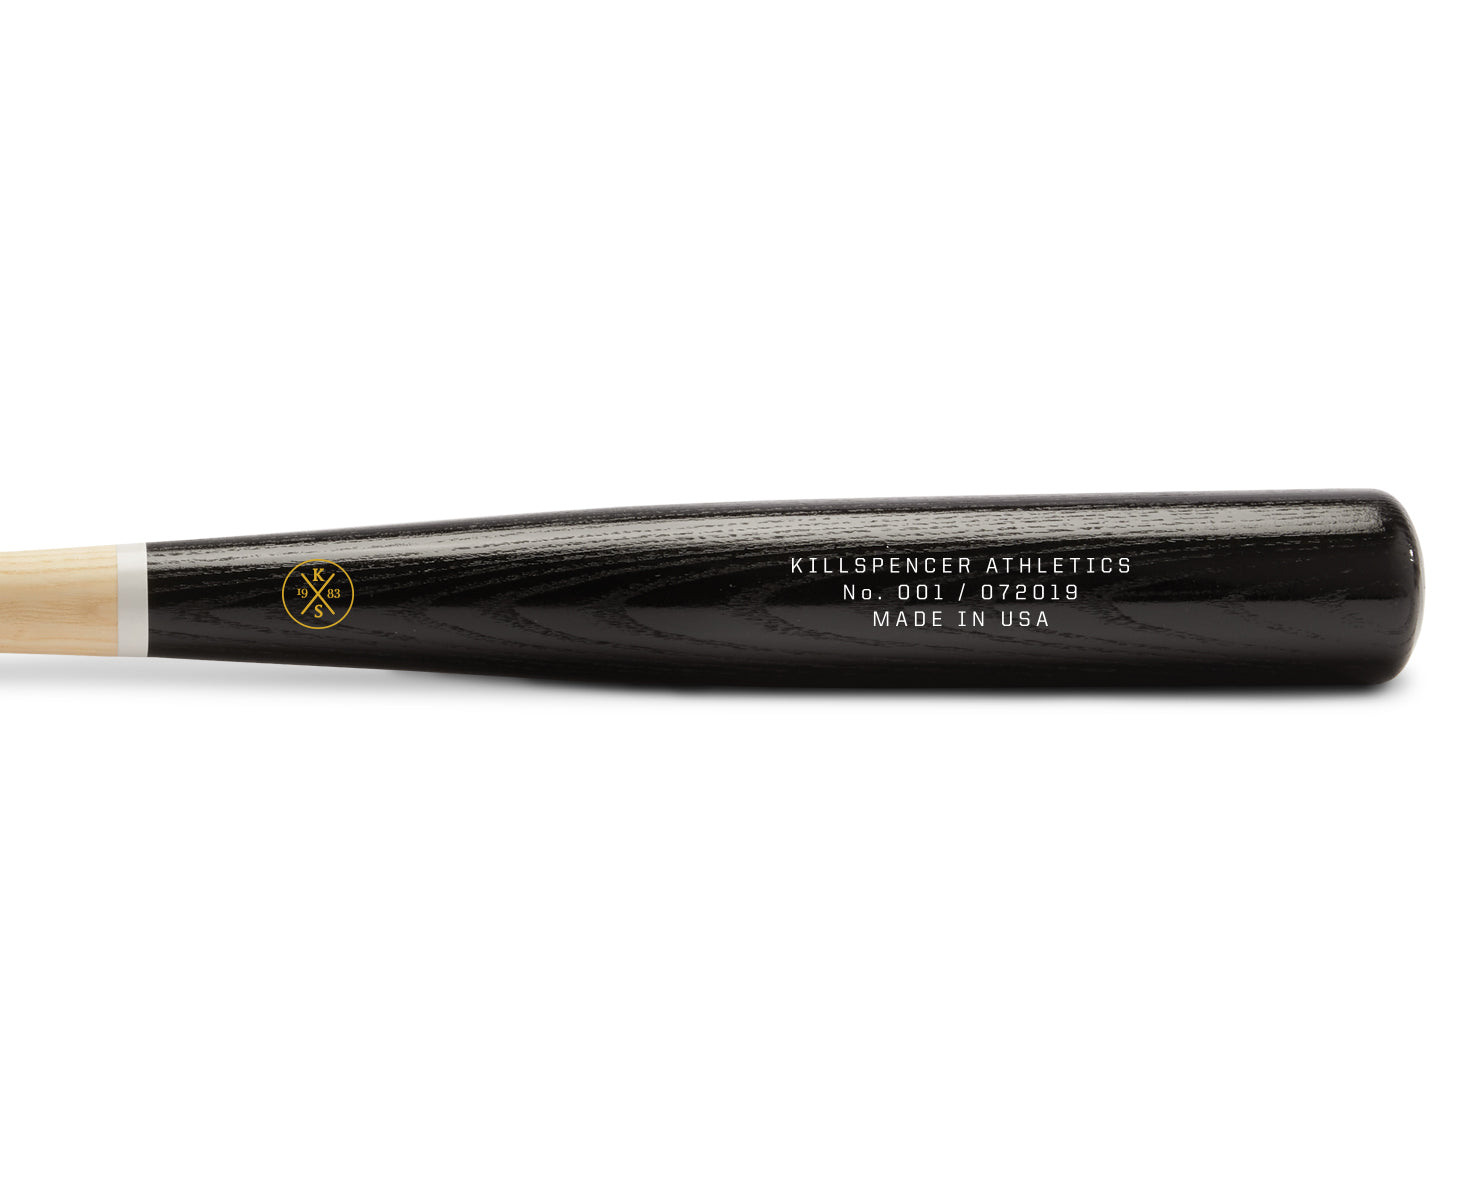 BASEBALL BAT 2.0 | KILLSPENCER® - Black Ash Hardwood